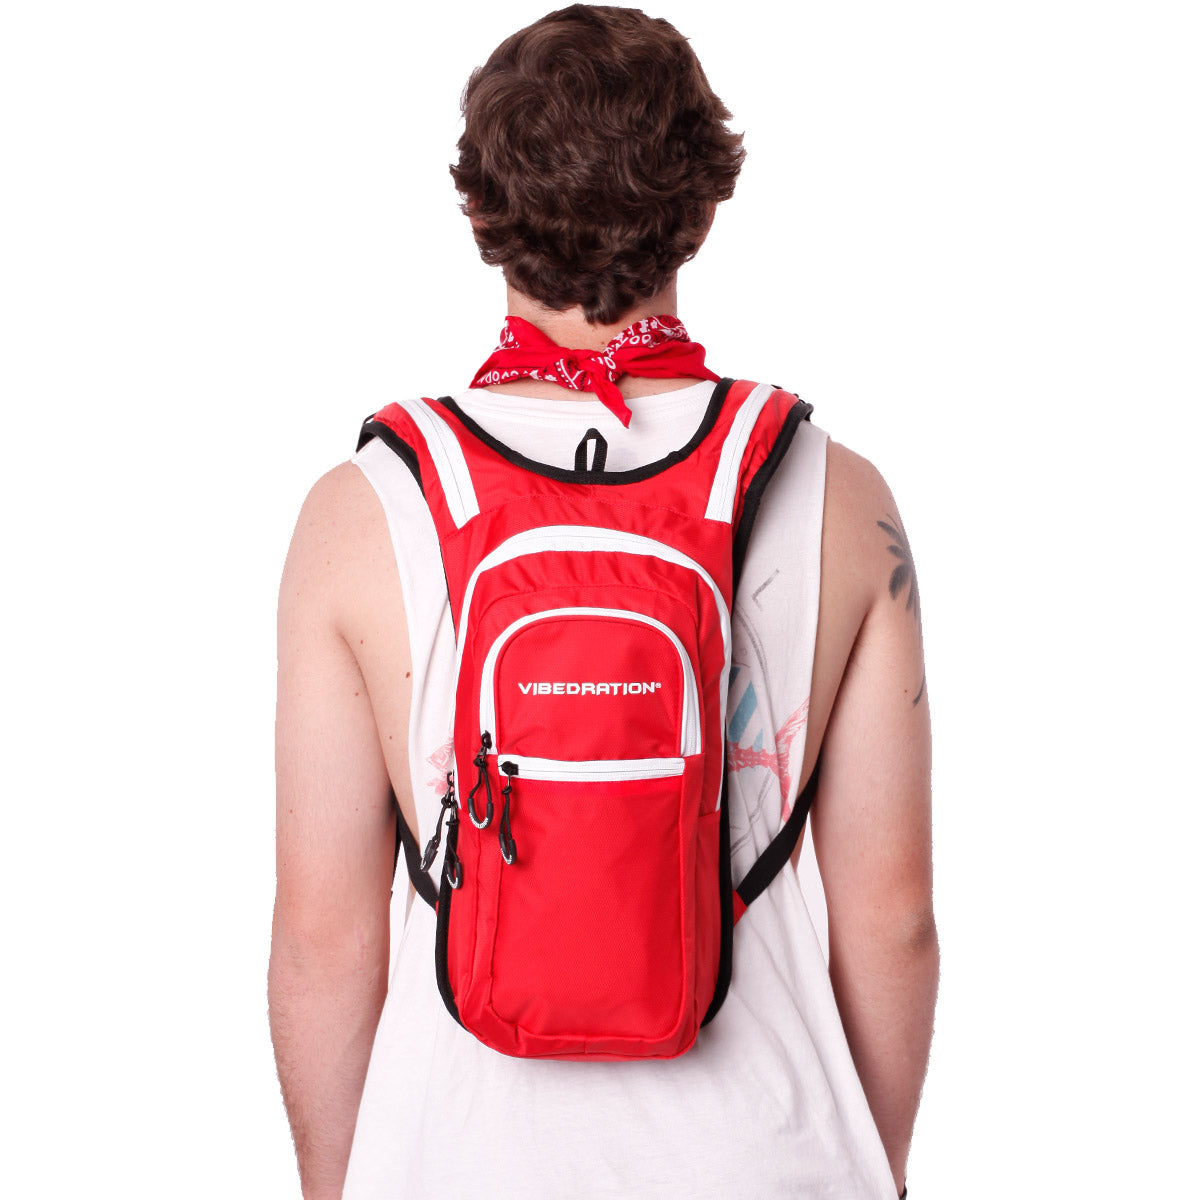 Back view of male wearing red and white hydration pack with three pockets.